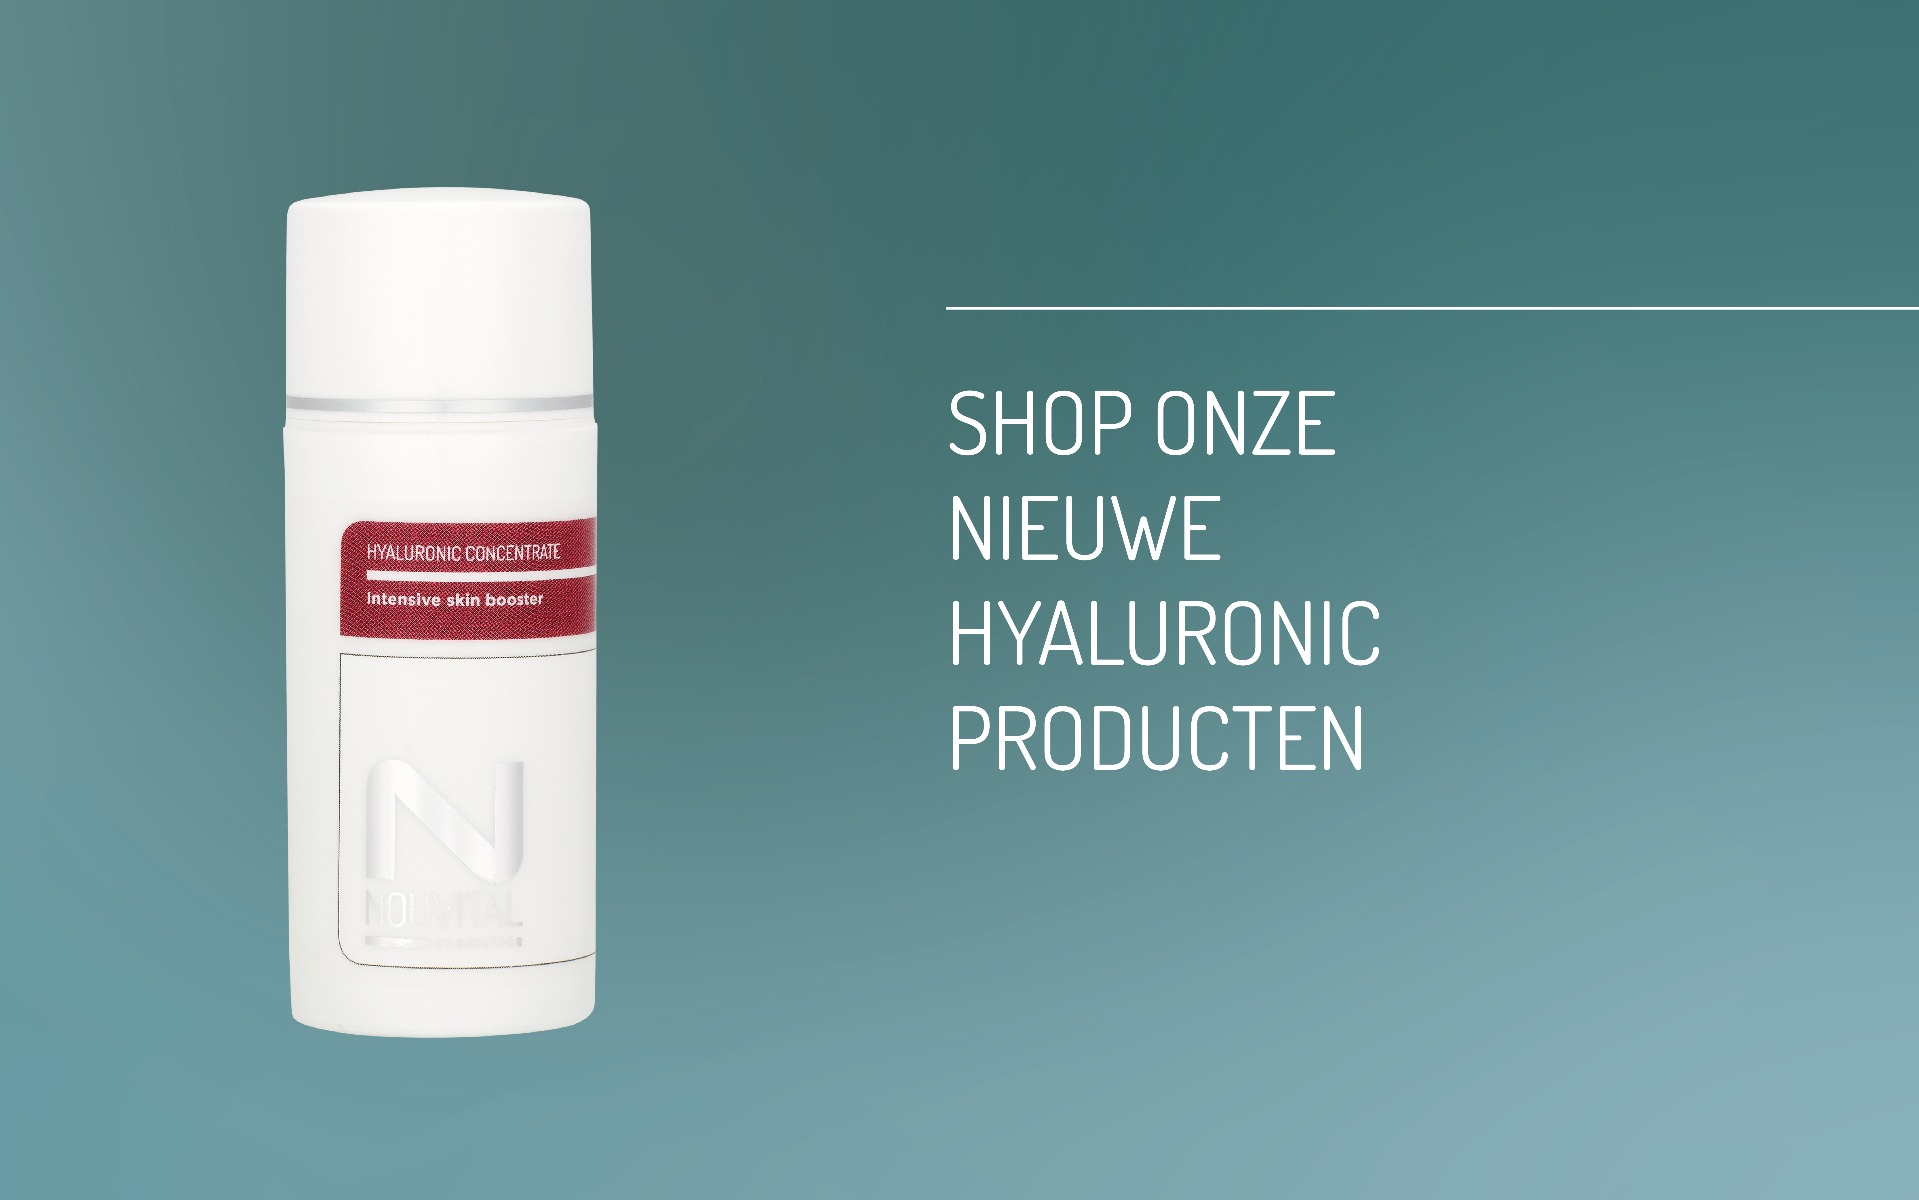 new_product_hyaluronic